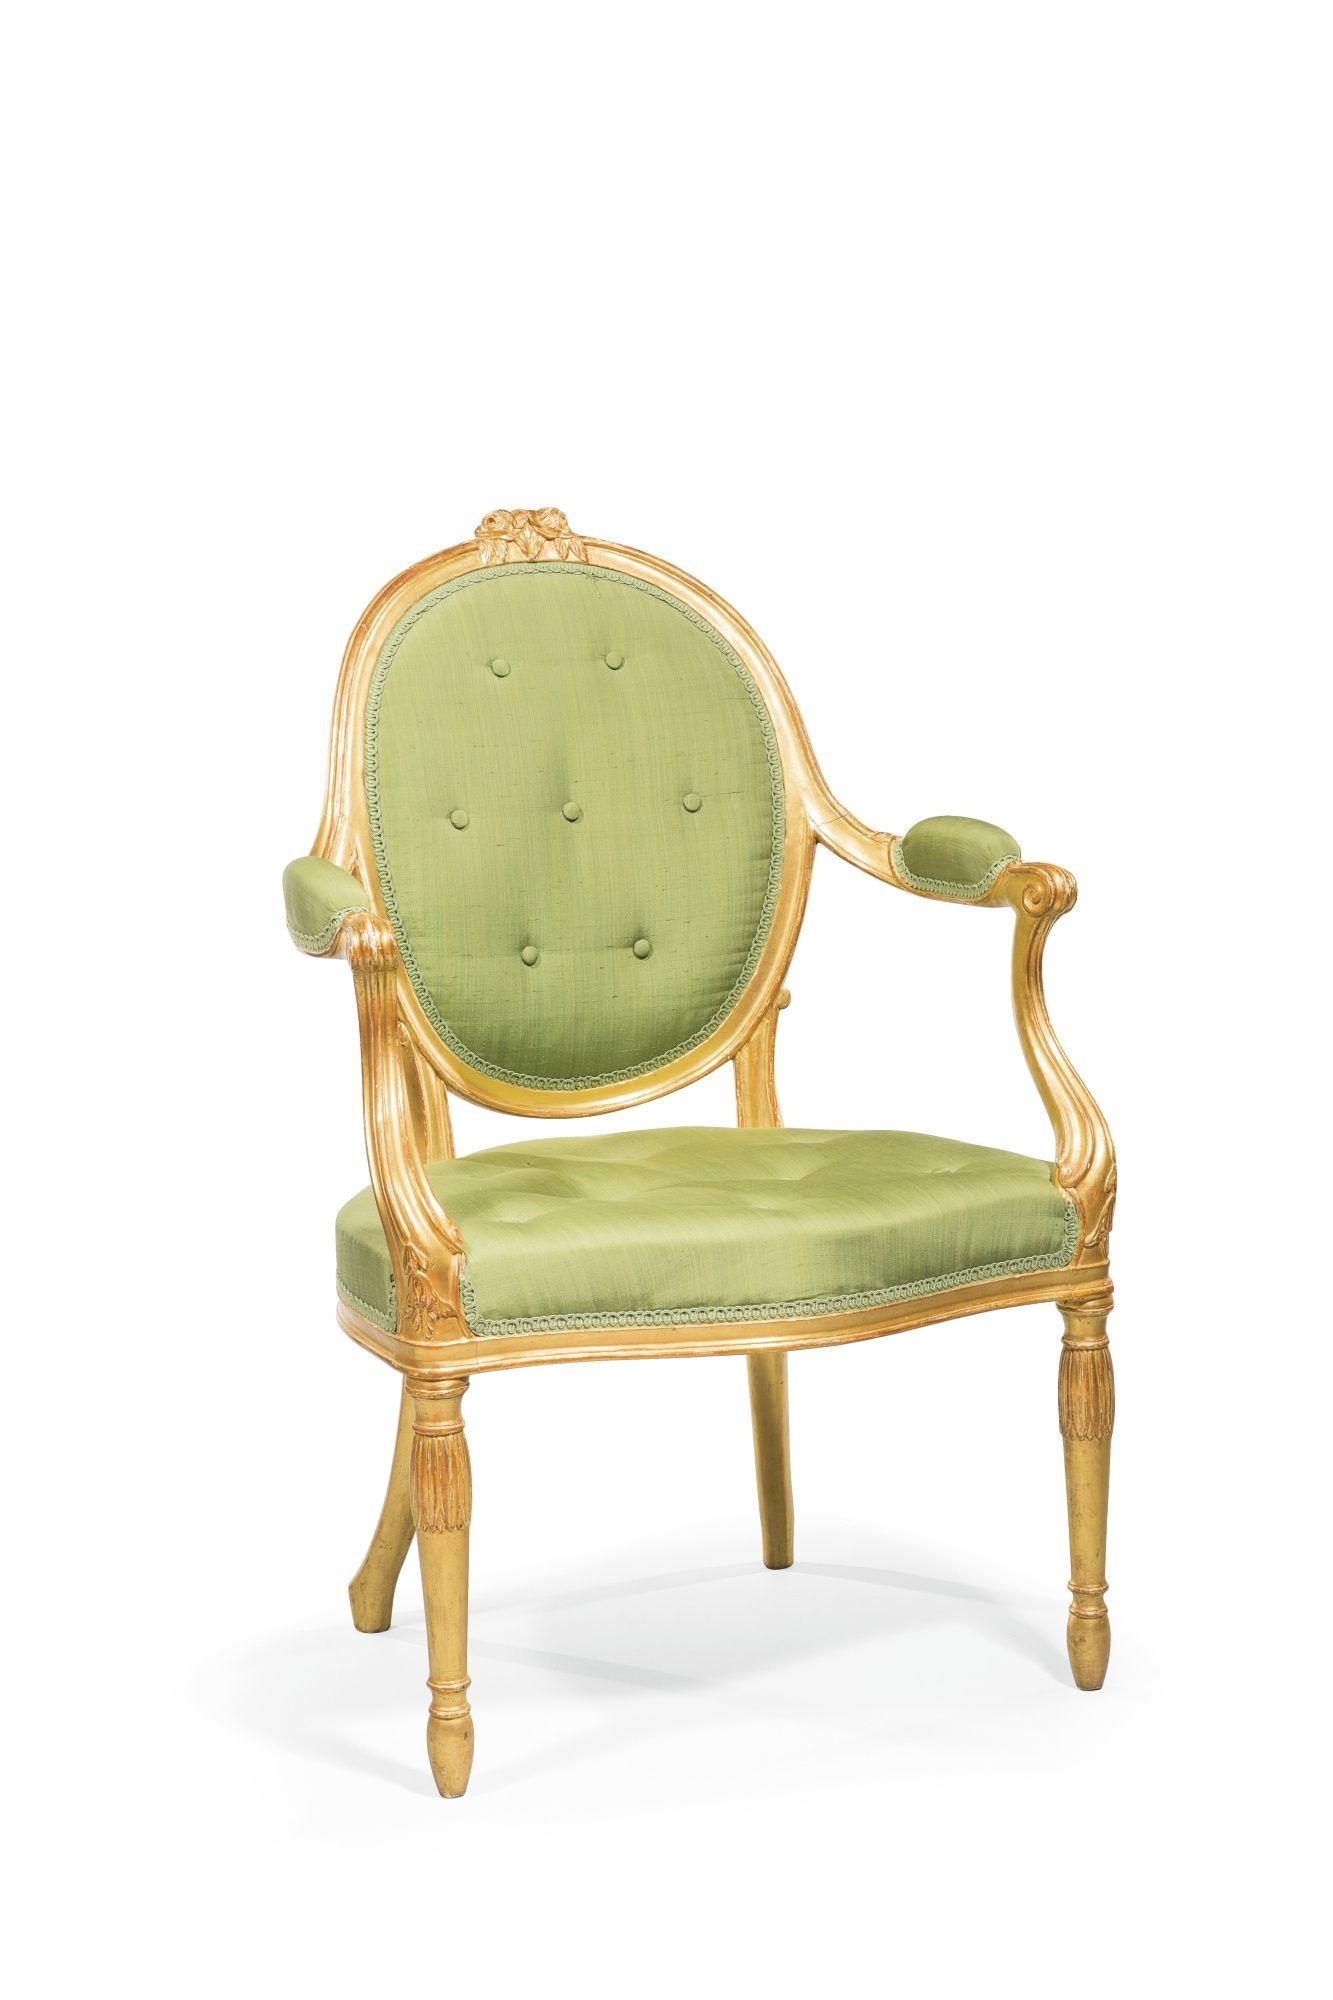 A George III giltwood open armchair, in the manner of John Linnell, circa 1770